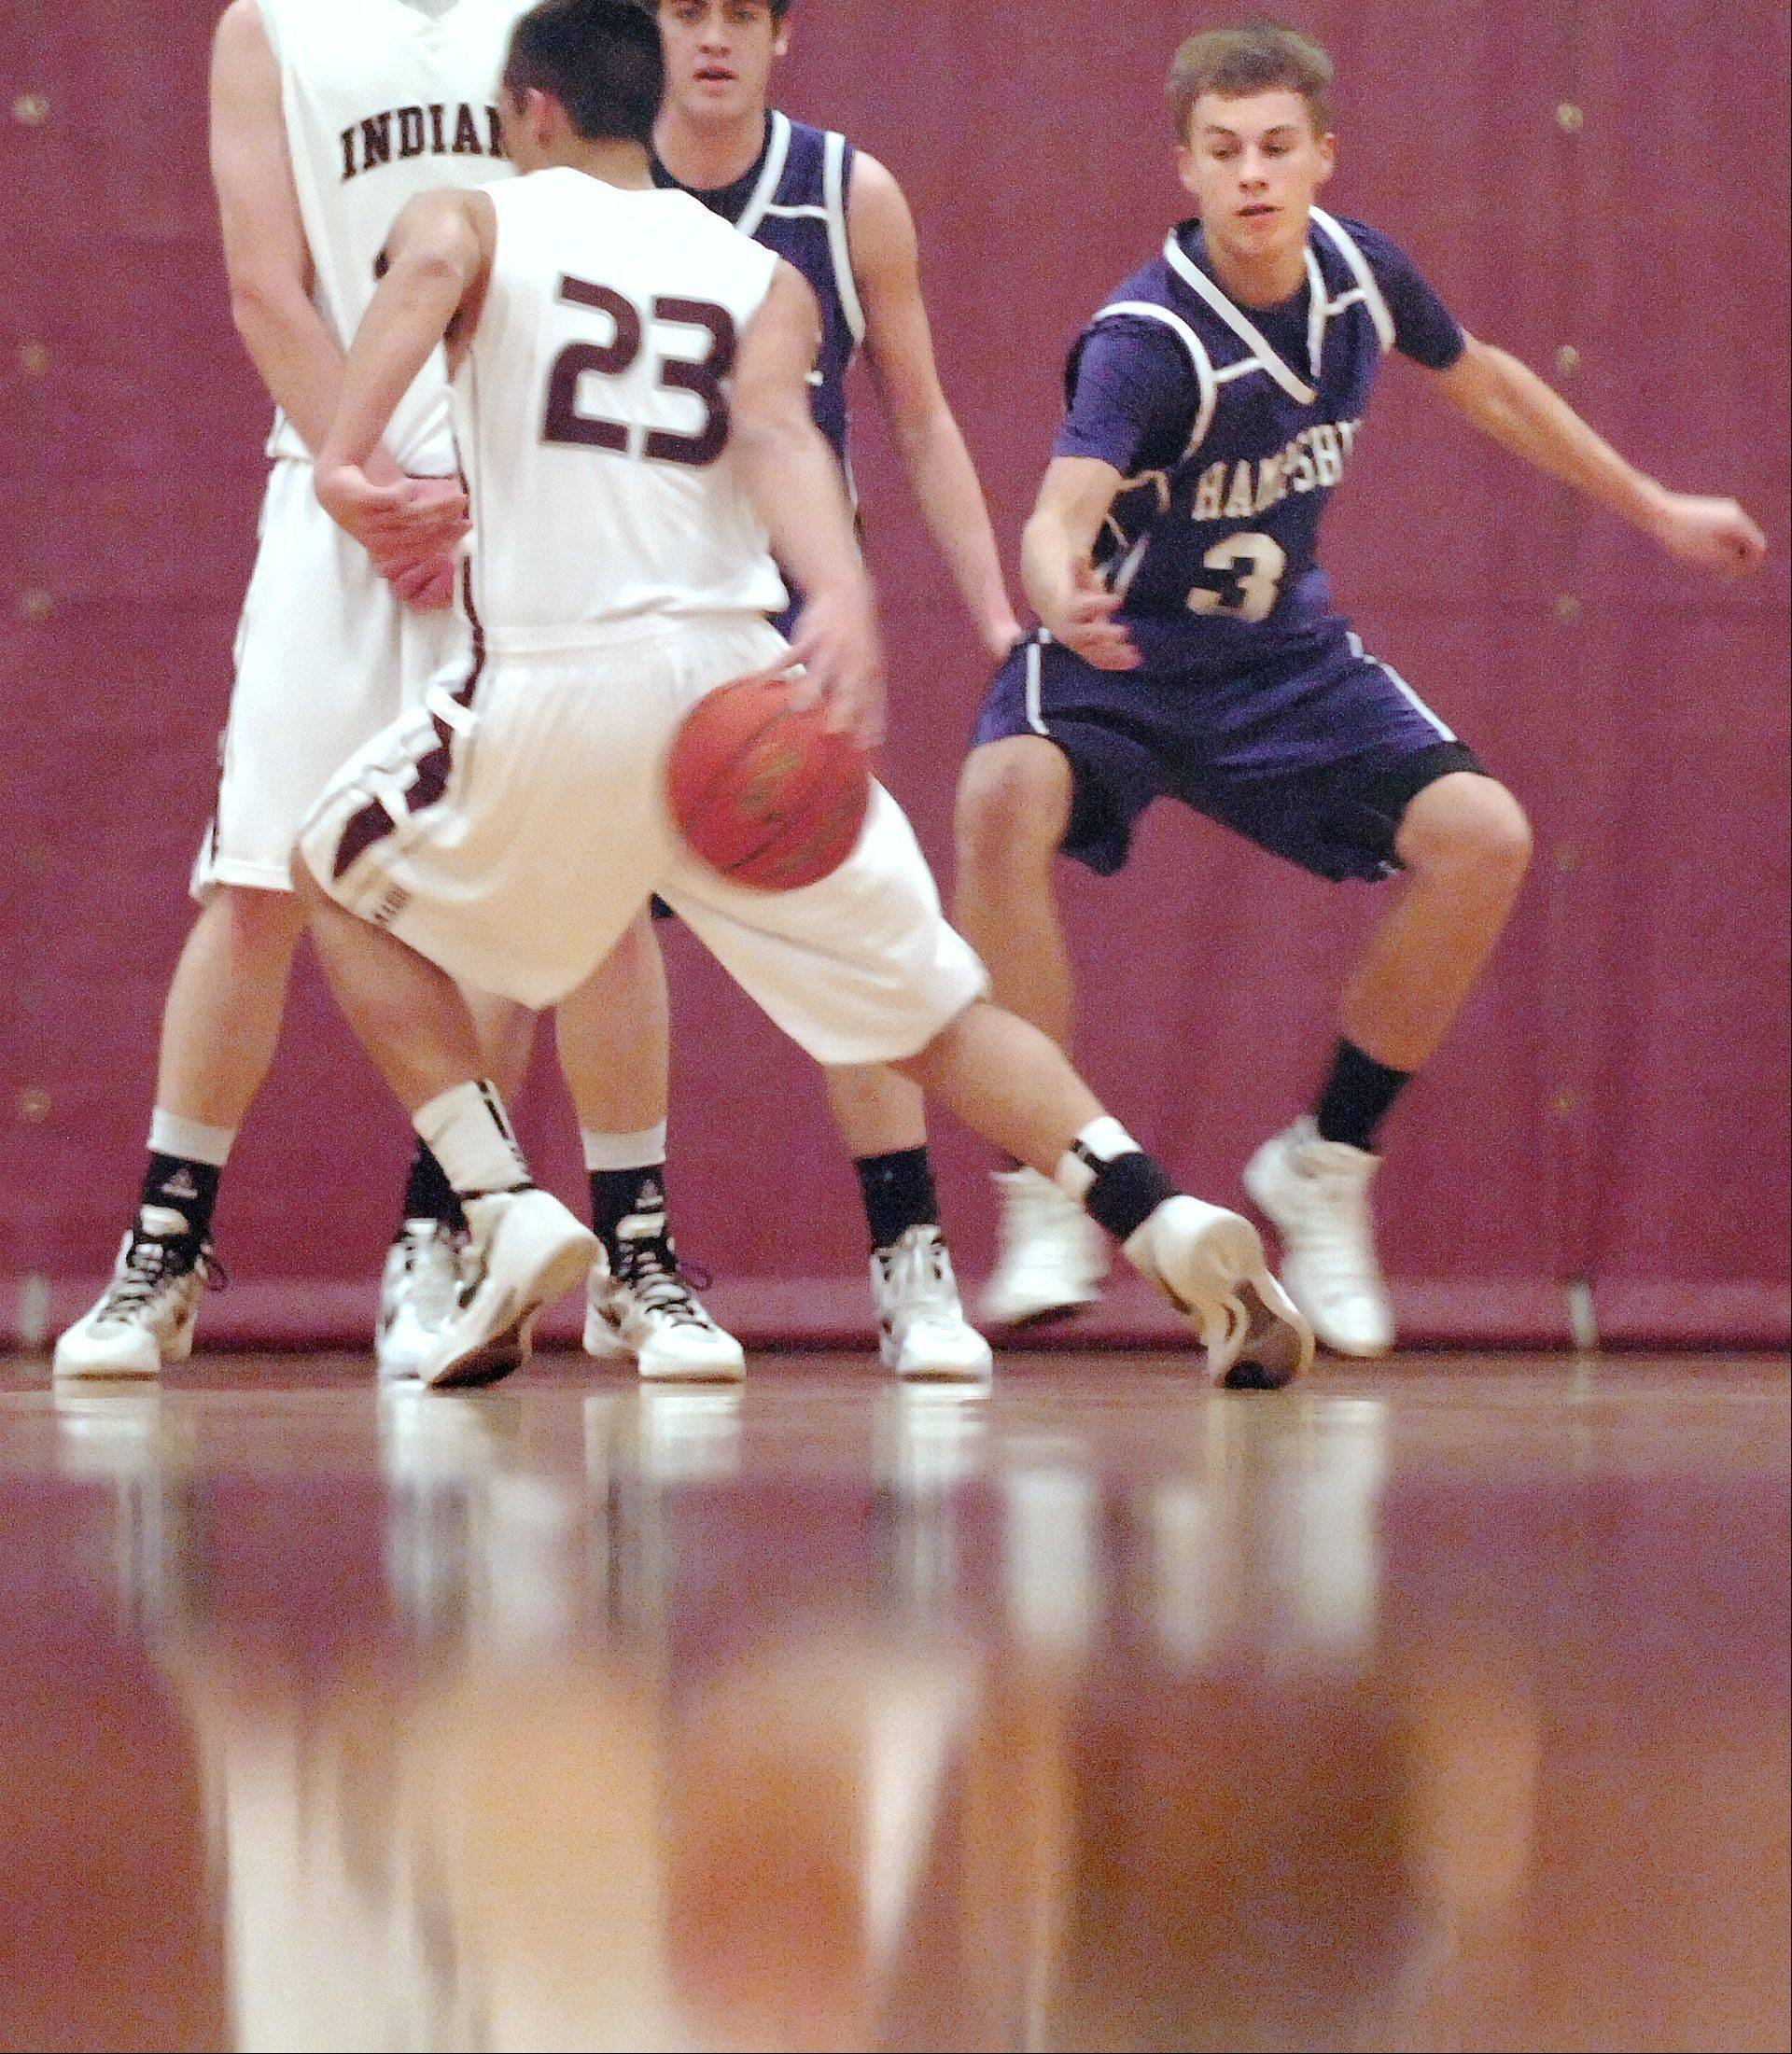 Marengo's Nick Ollero escapes the defense of Hampshire's Ryan Cork by dribbling behind his back Tuesday in Marengo.